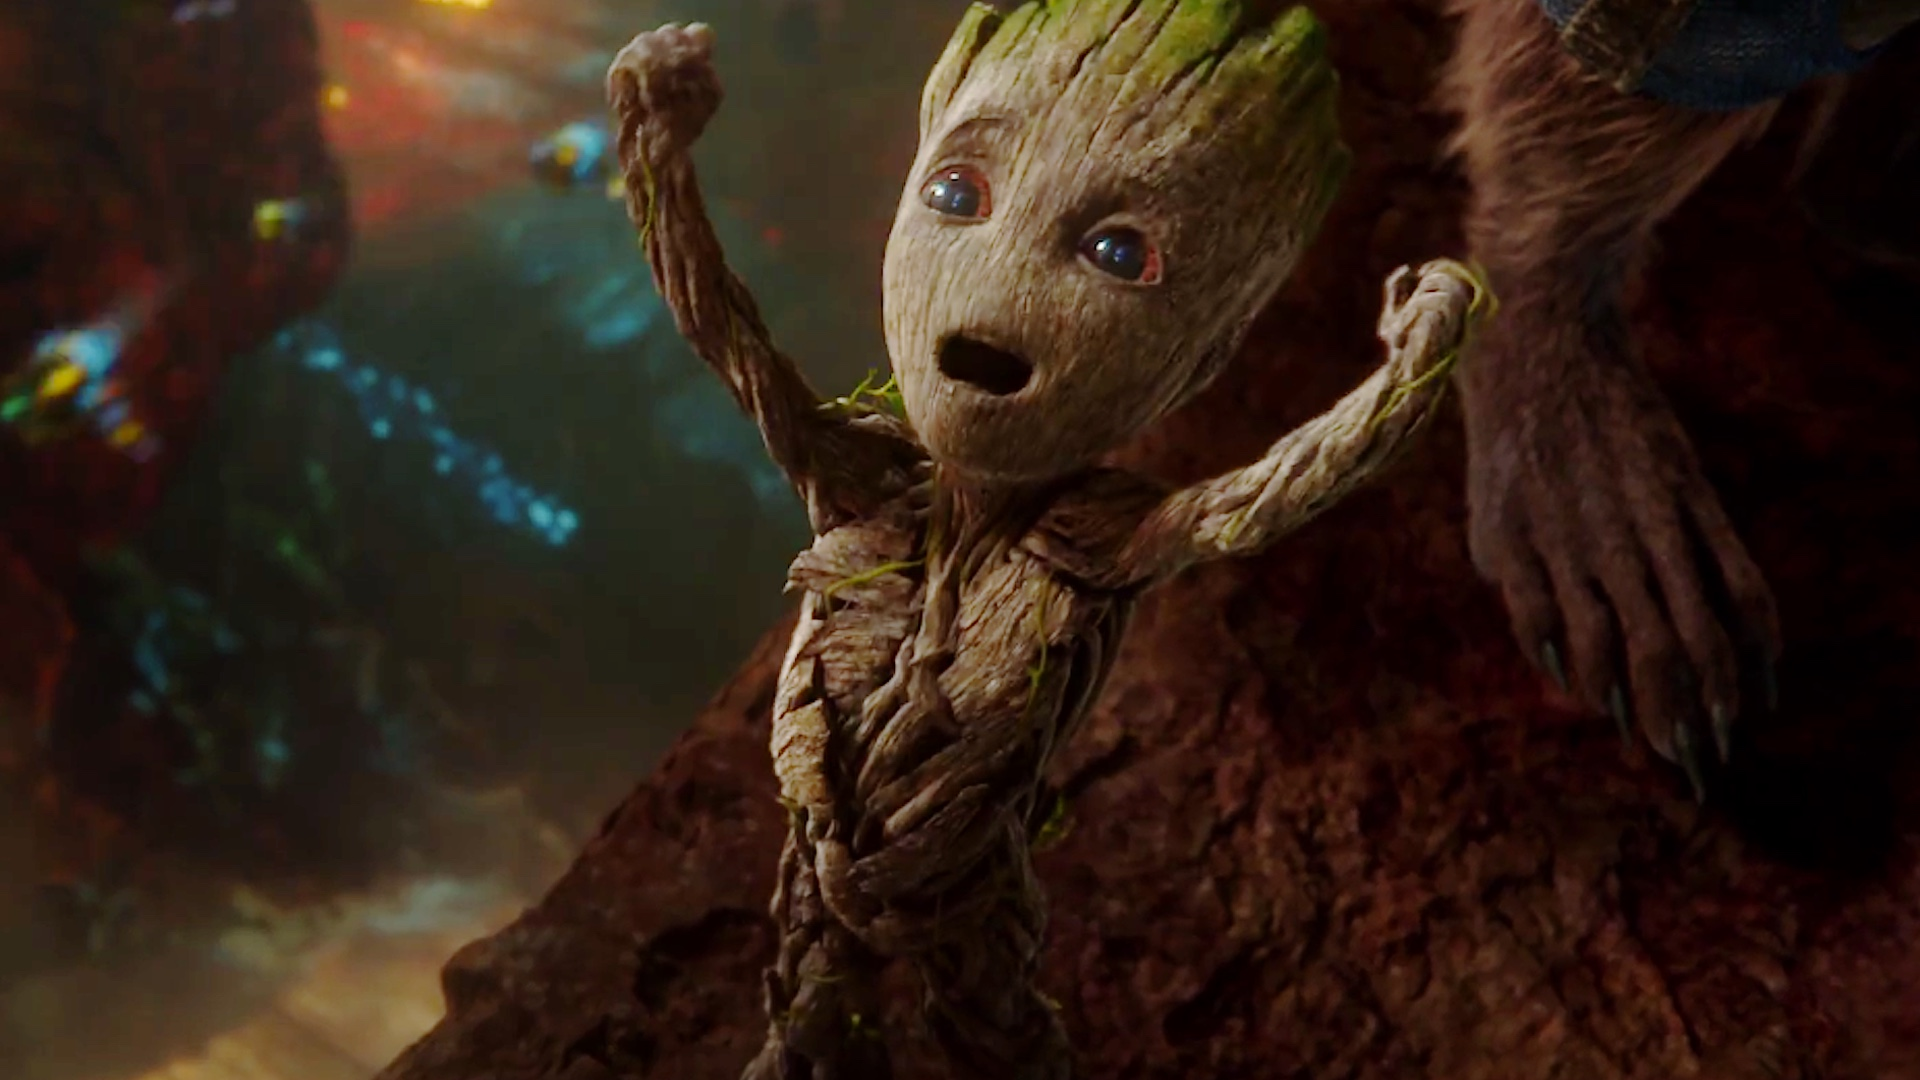 james-gunn-reveals-that-baby-groot-is-actually-the-son-of-groot-social.jpg